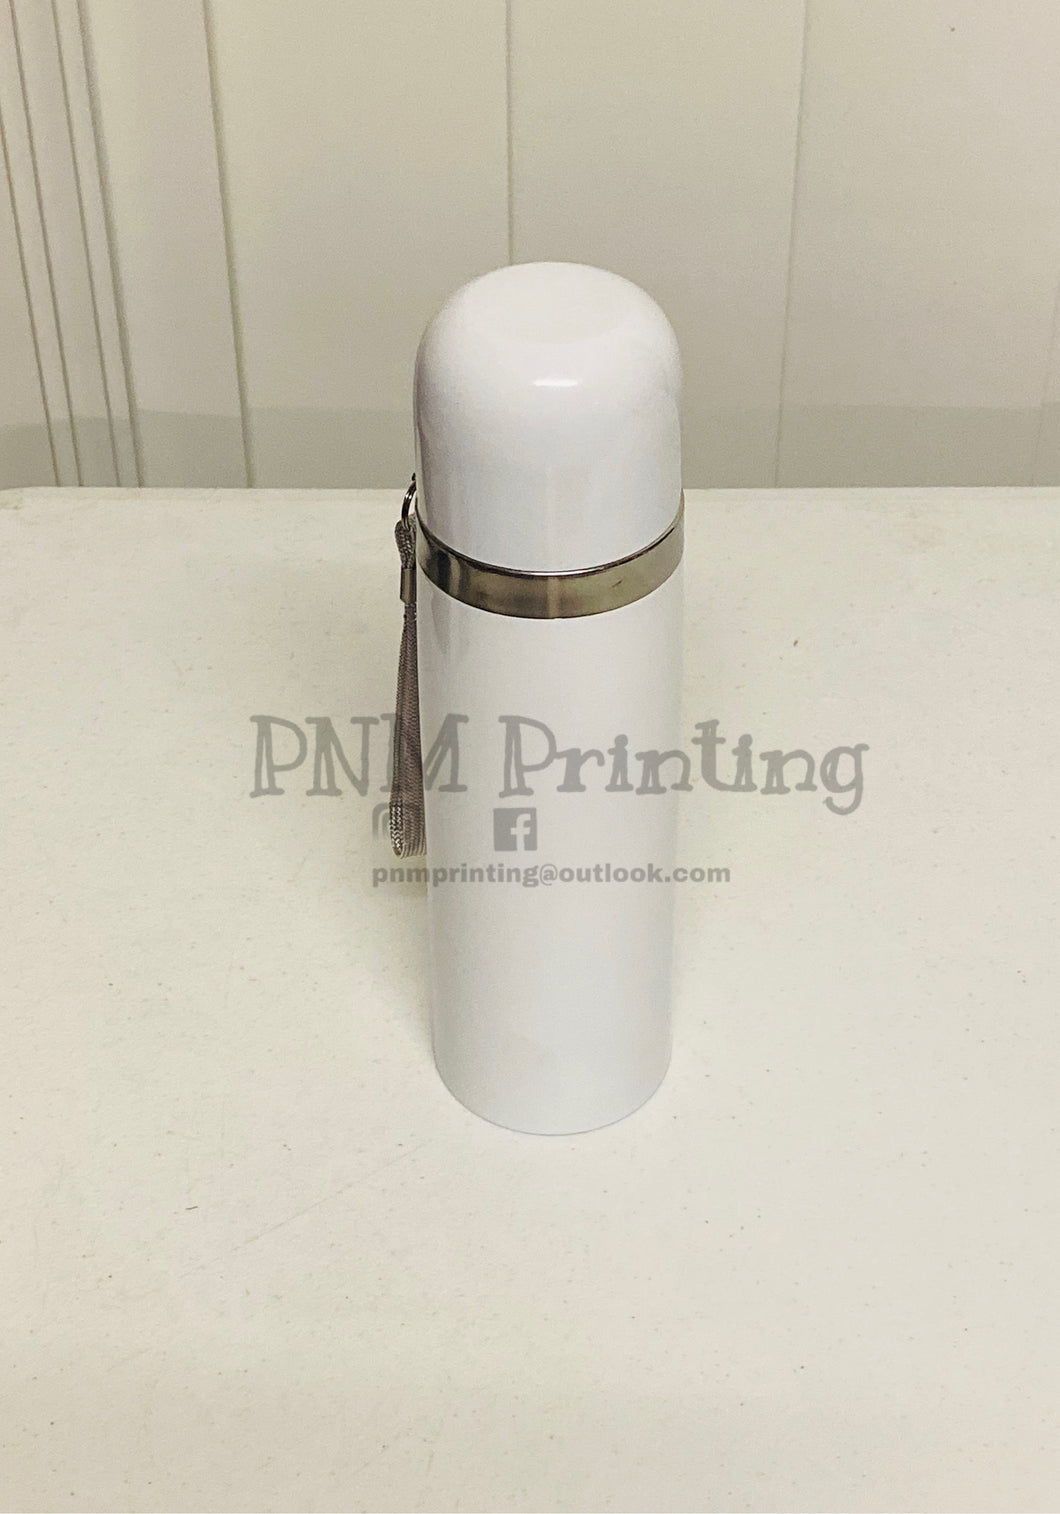 Peraonalised Stainless steel thermo flask